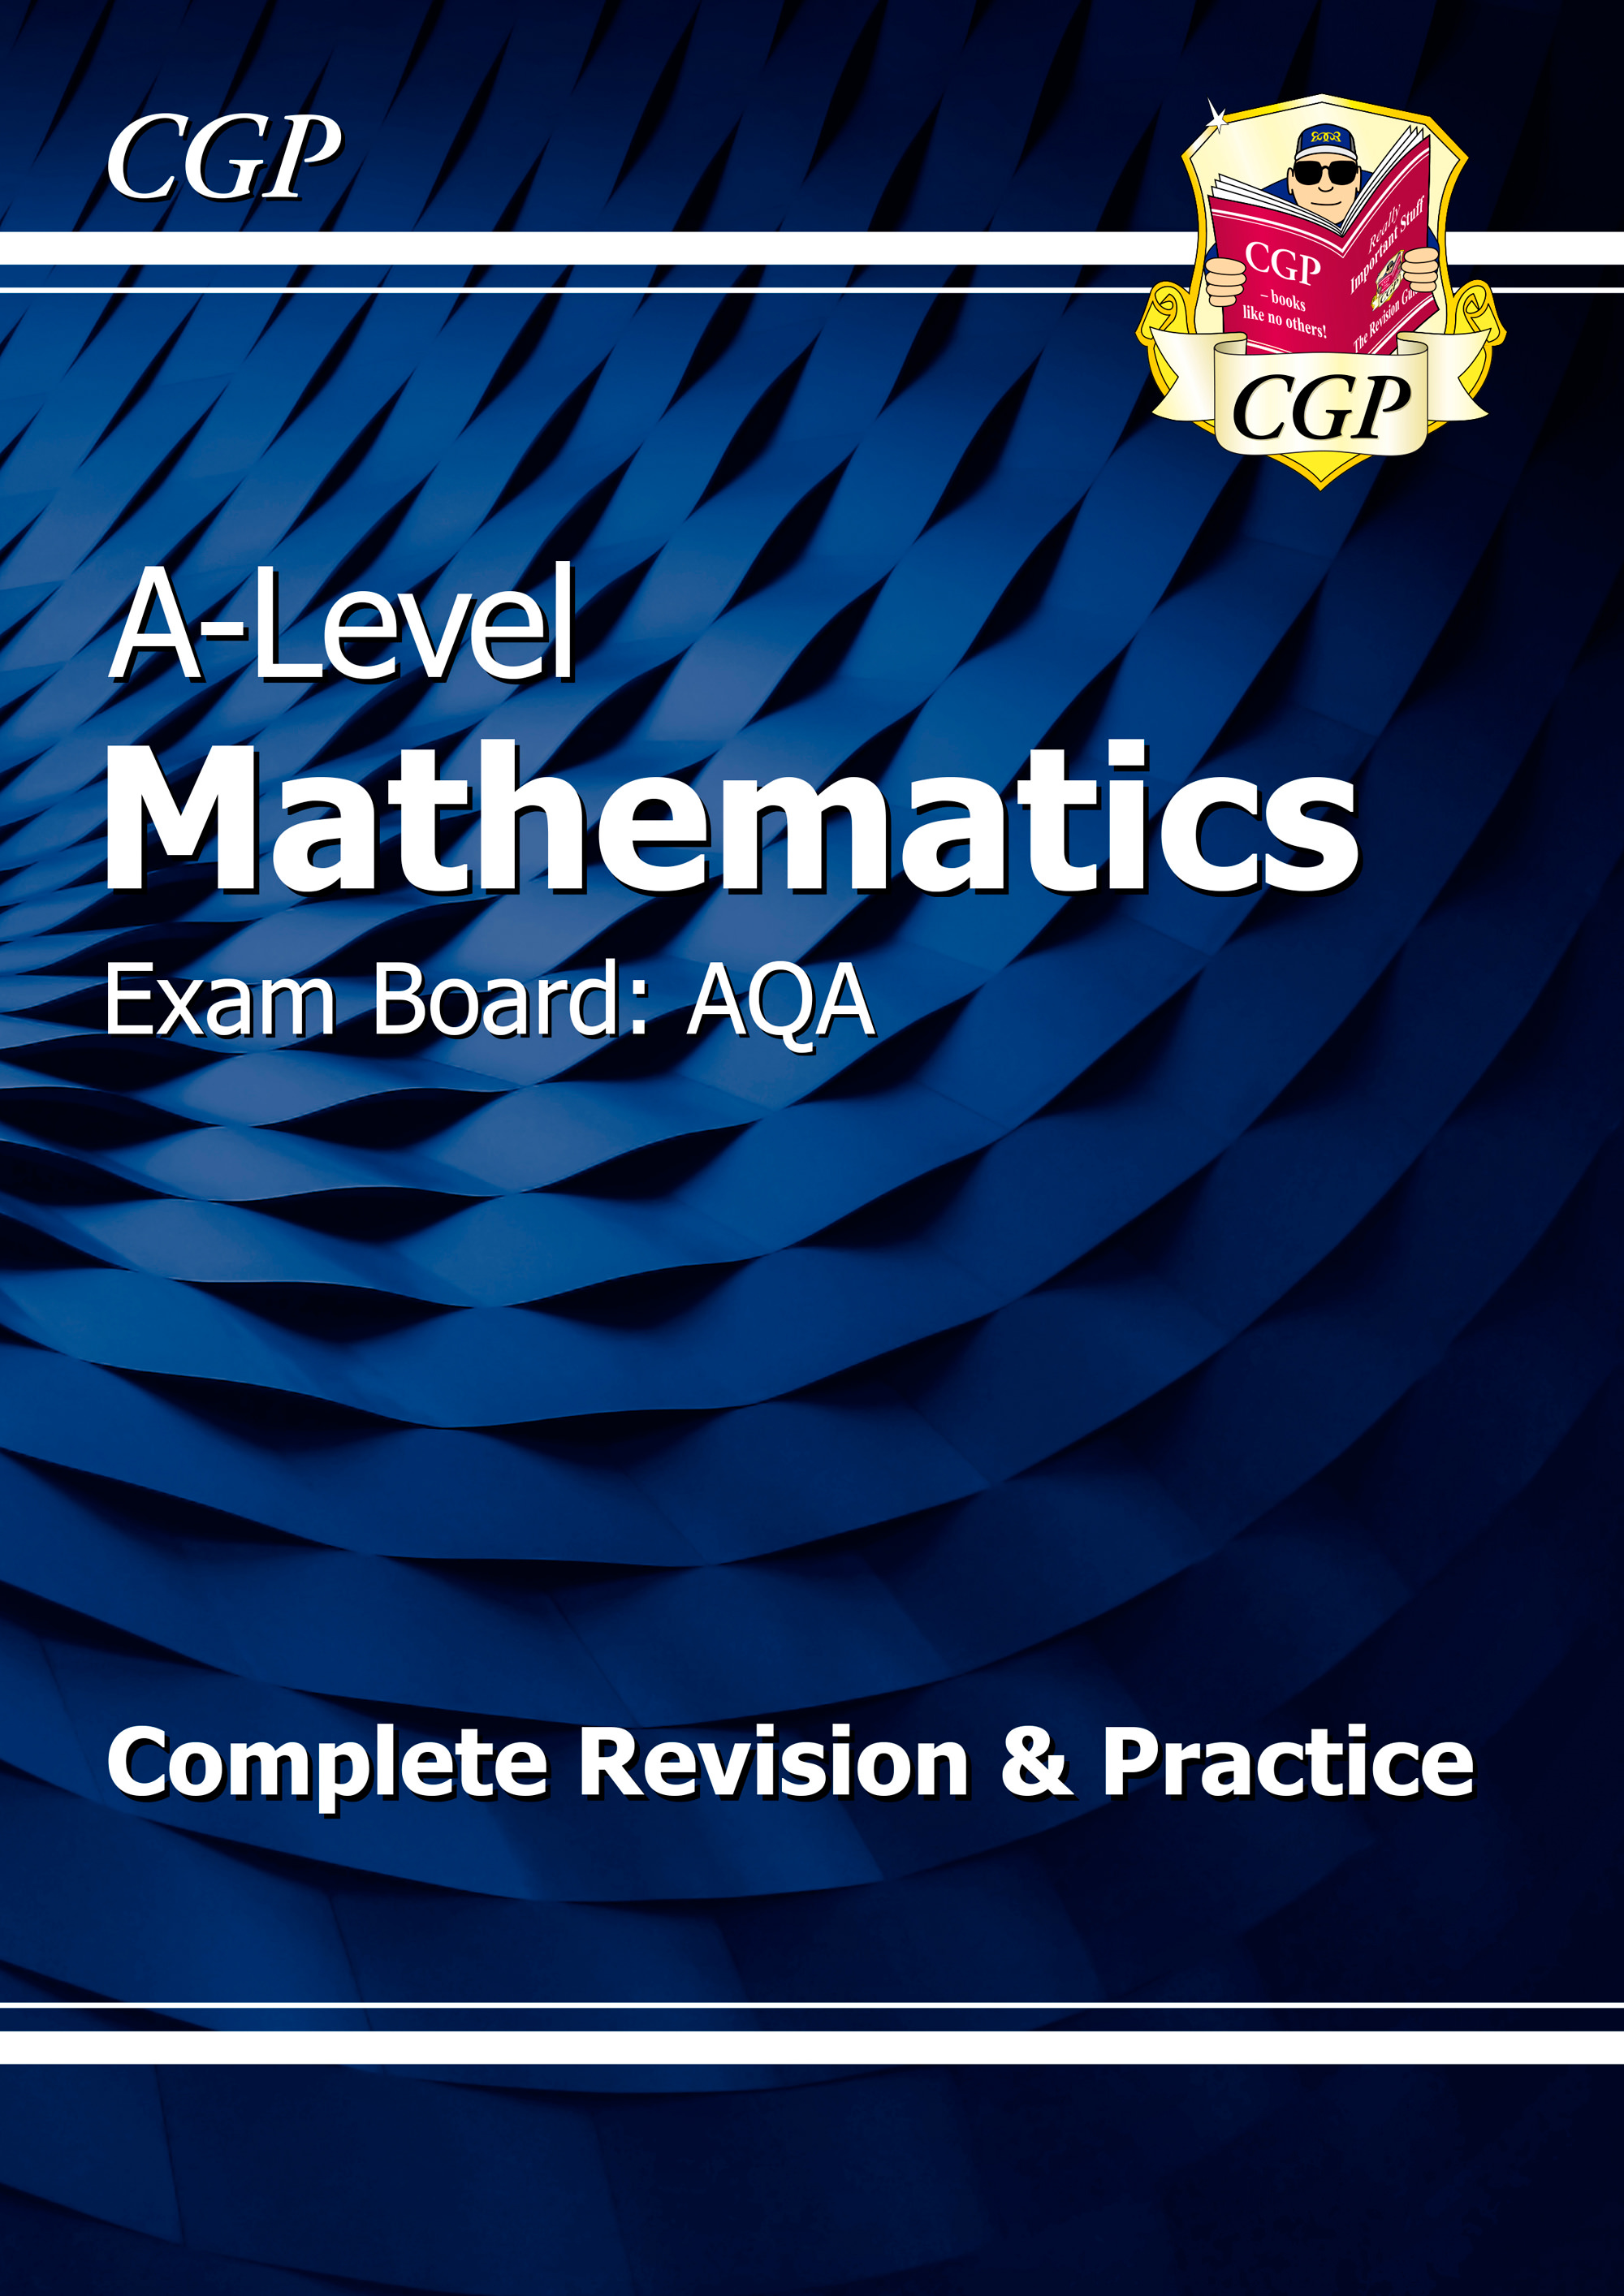 MAHR71DK - New A-Level Maths for AQA: Year 1 & 2 Complete Revision & Practice